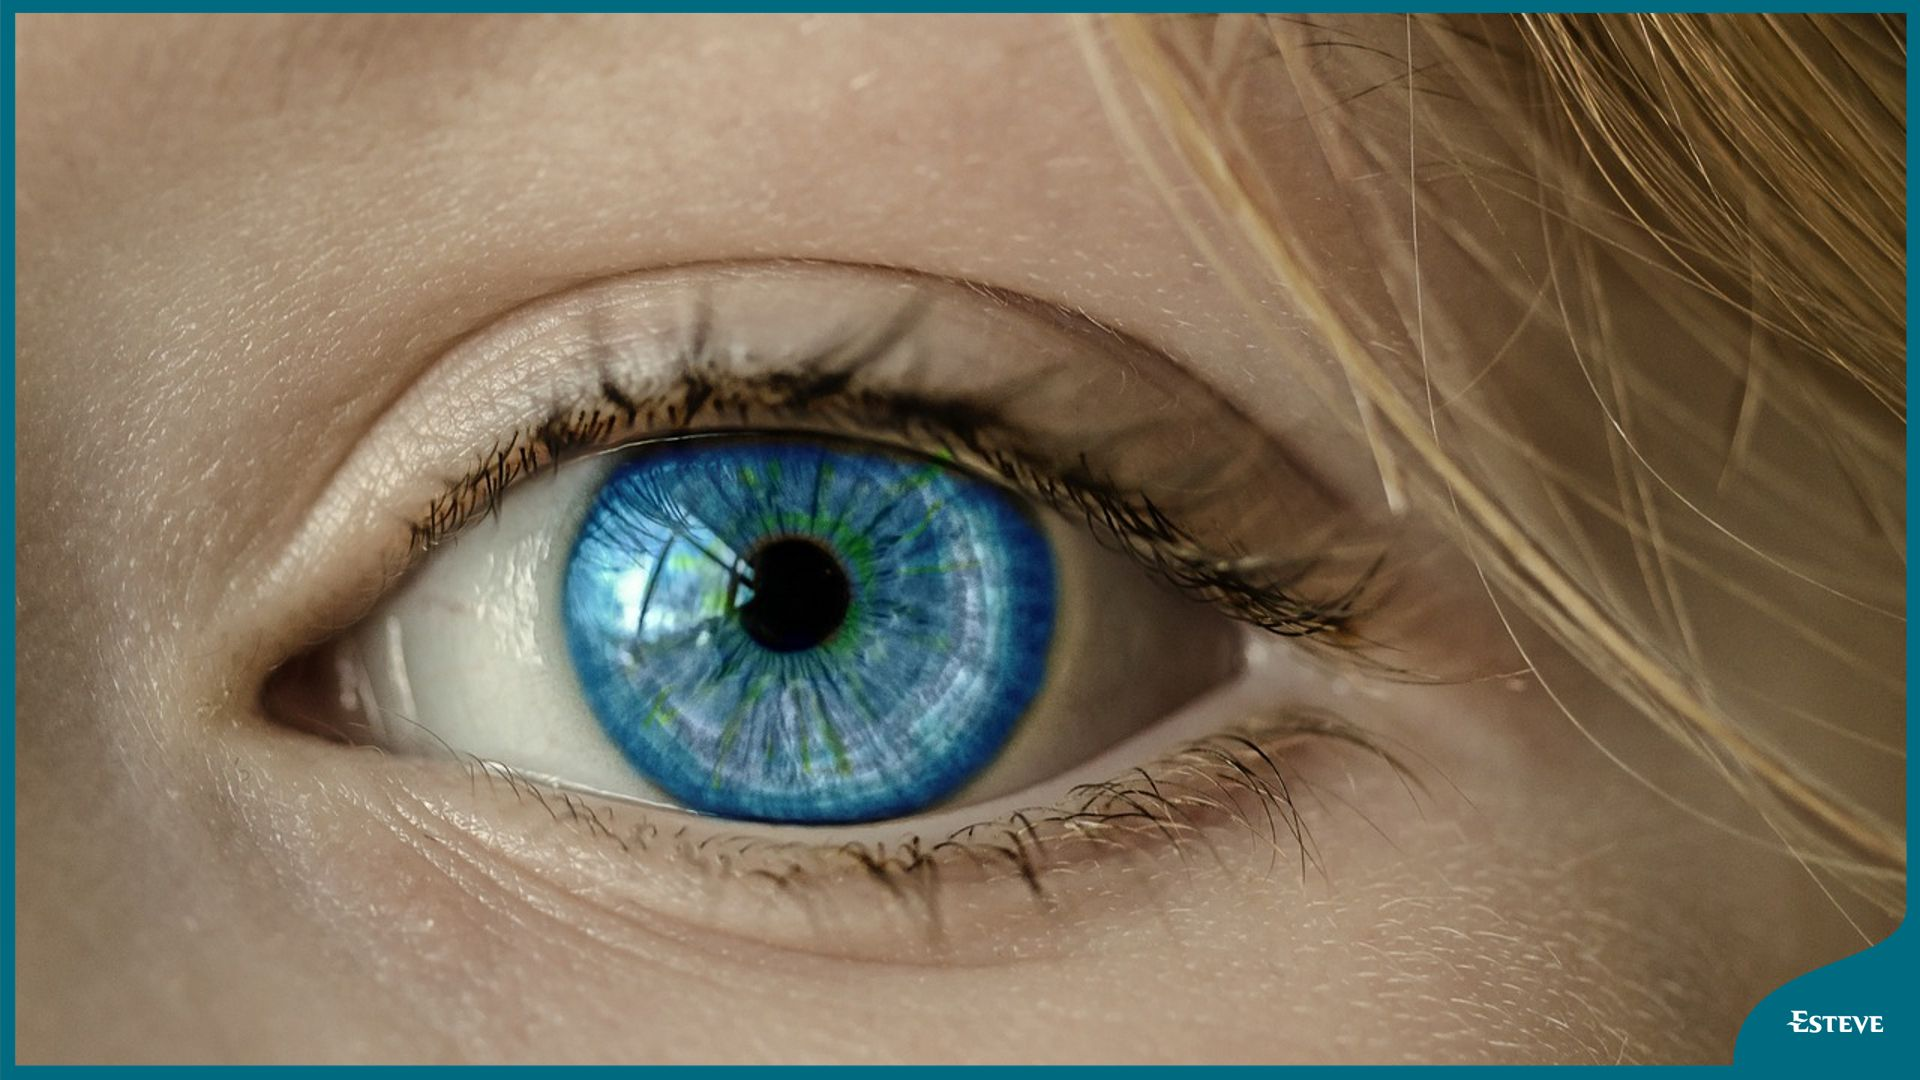 NURSES OFFER CARE AND PREVENTION OF DRY EYE, A CONDITION THAT AFFECTS 60% OF PEOPLE OLDER THAN 45 YEARS